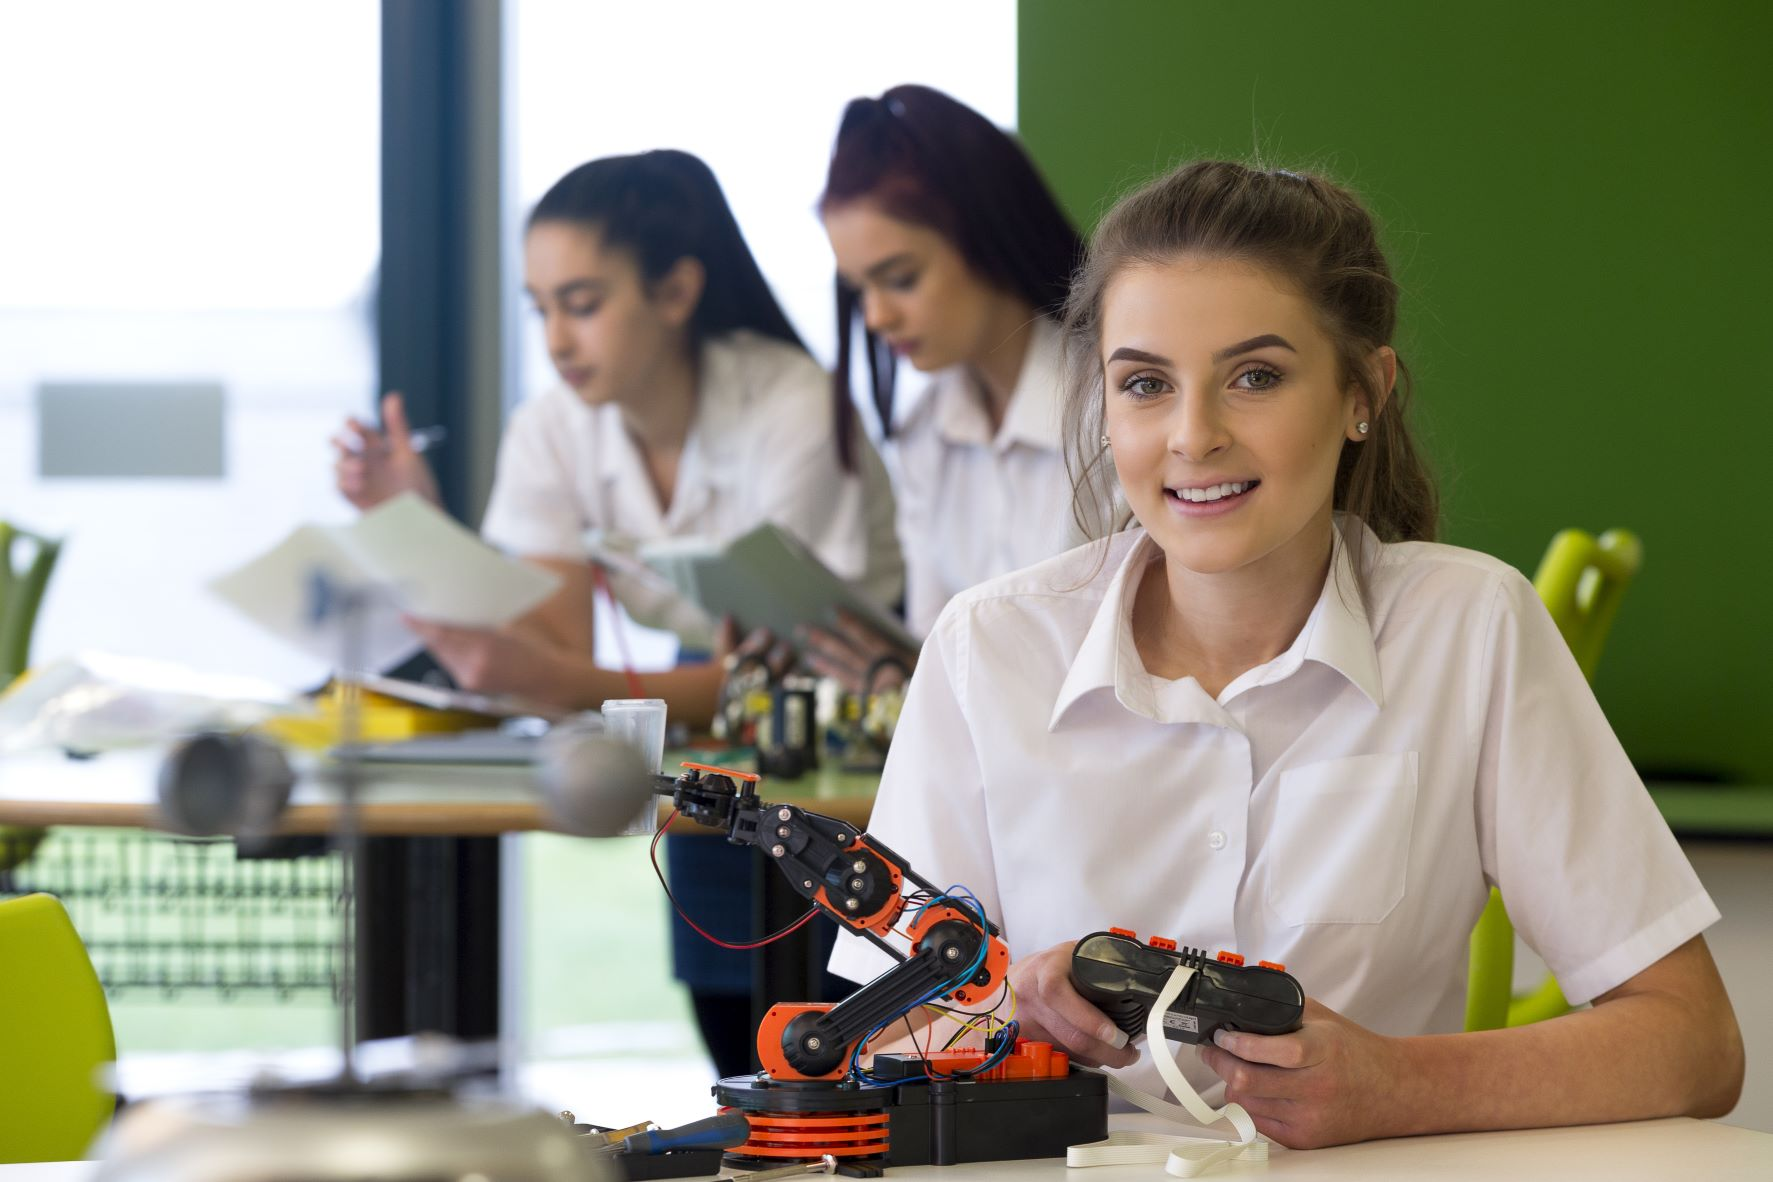 Young female engineer students